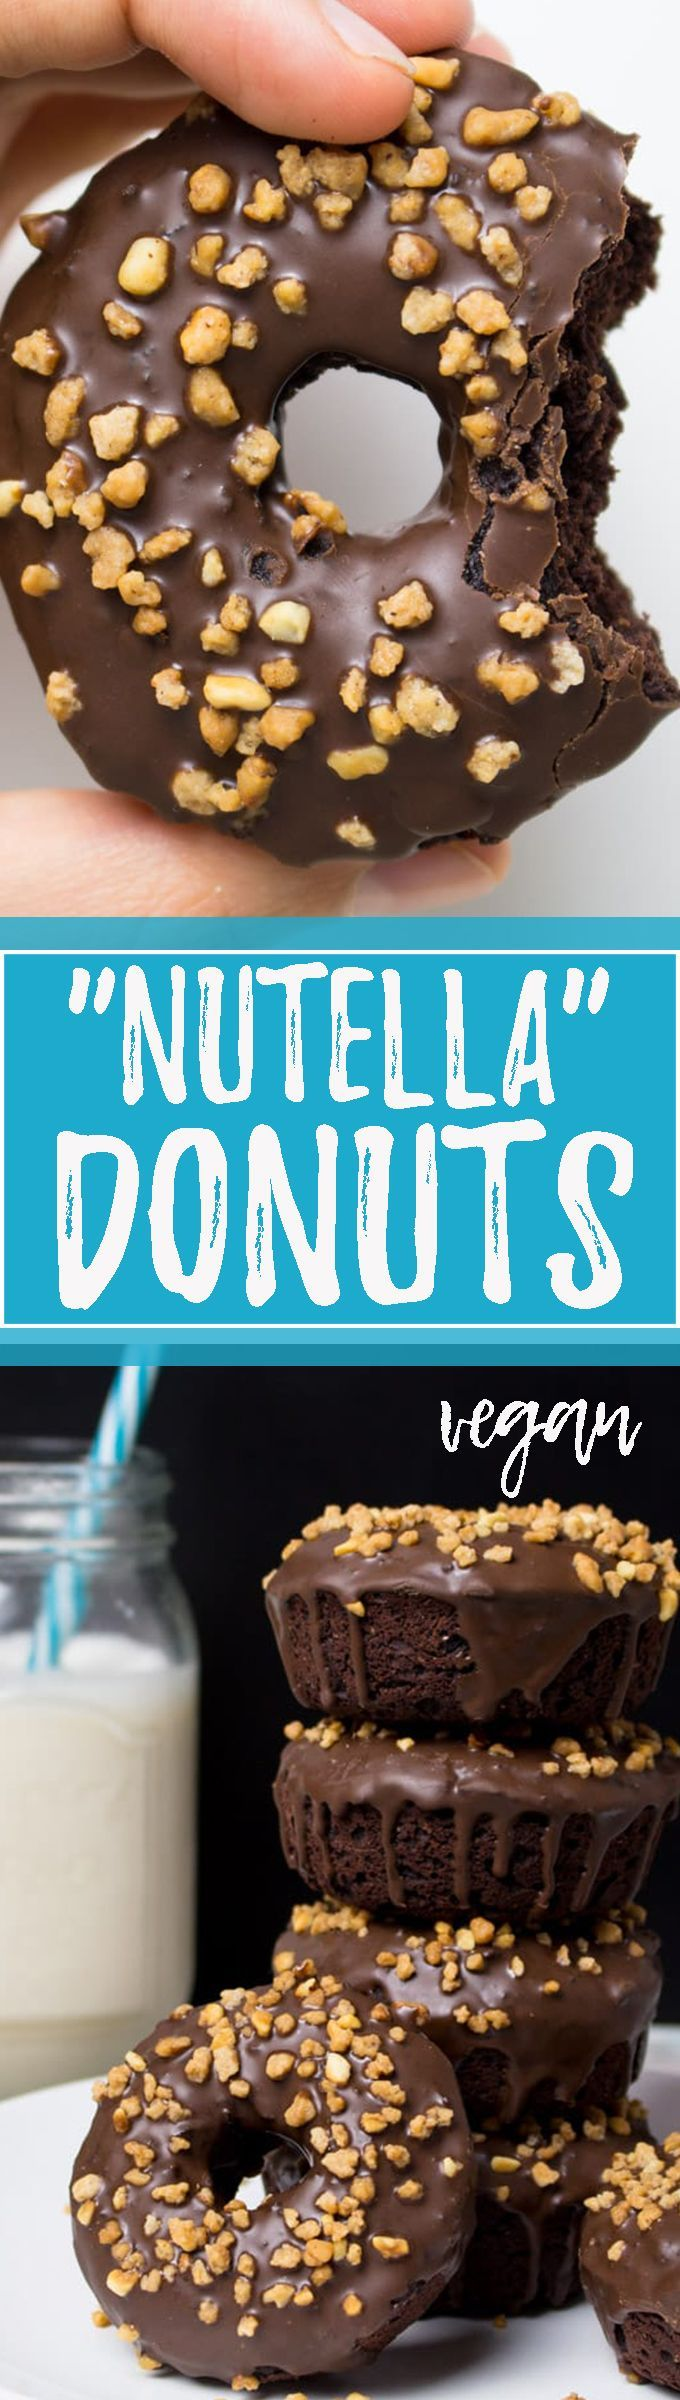 """These vegan donuts with chocolate and hazelnuts (aka """"Nutella"""" donuts) are my absolute favorite! And the best thing is that they're way healthier than regular donuts!"""